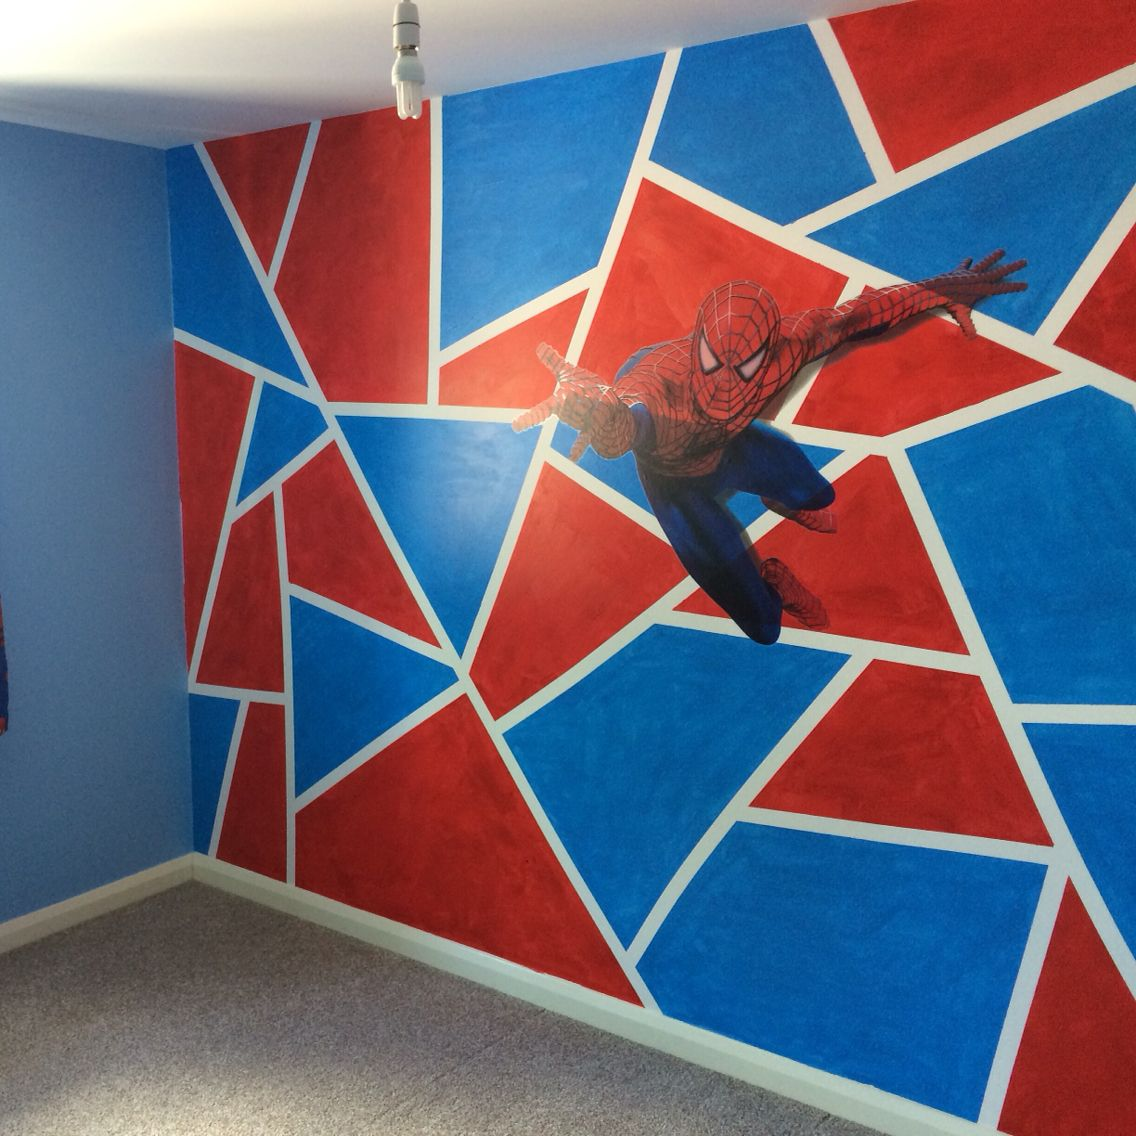 Spiderman Tape Crazy Red Blue Bedroom Boys Bedroom Spiderman Bedroom Paint Red Boys Bedroom Boy Room Paint